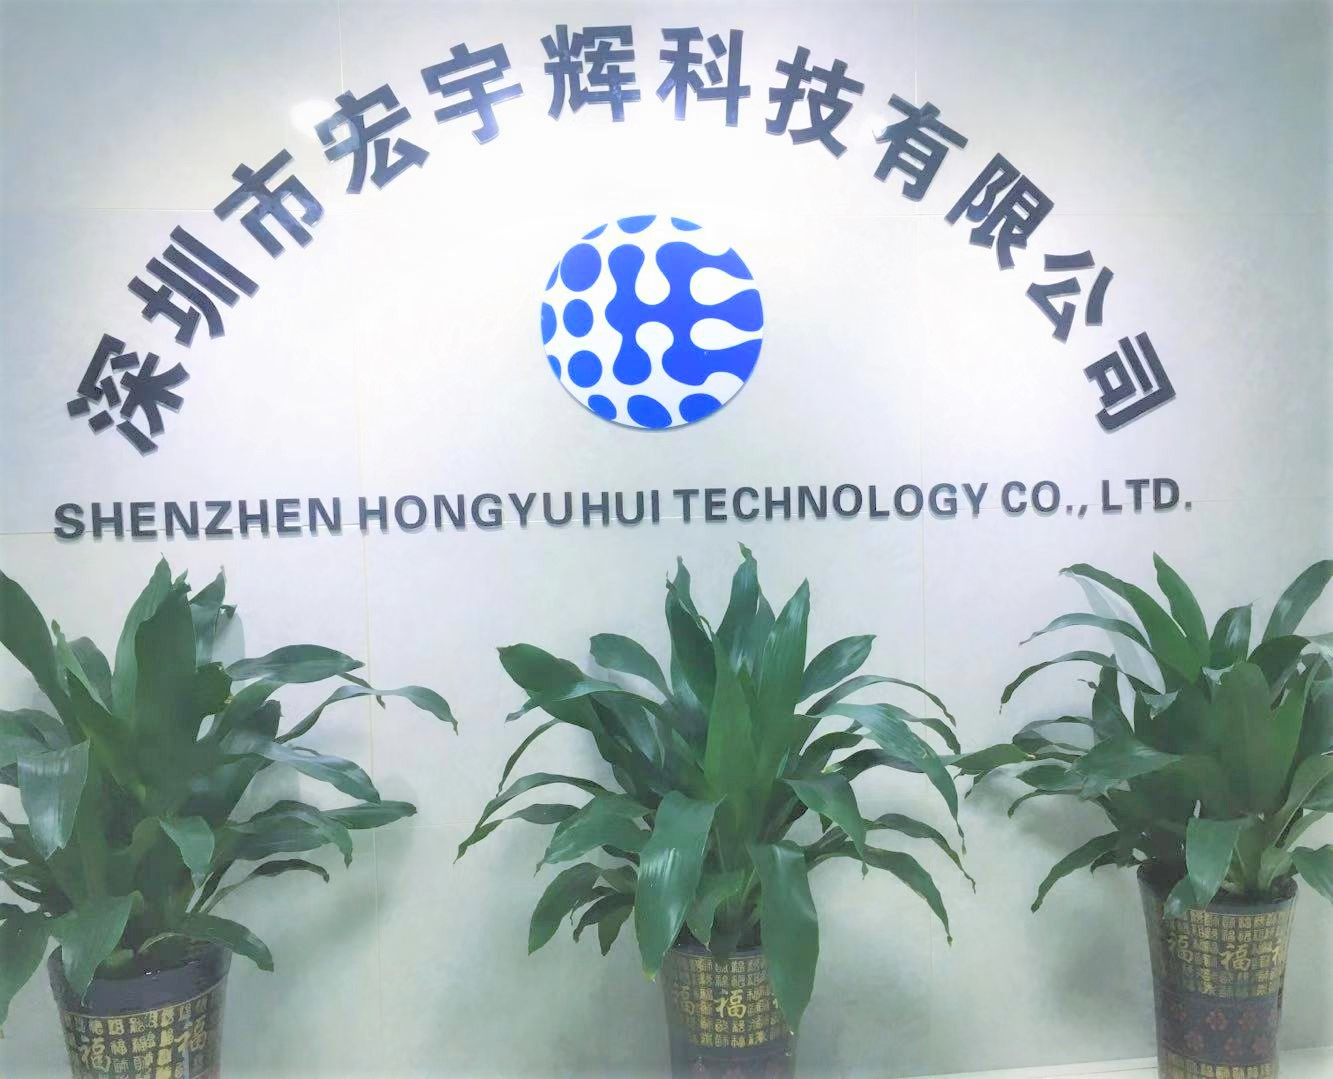 Shenzhen Hongyuhui Technology Co., Ltd. was founded